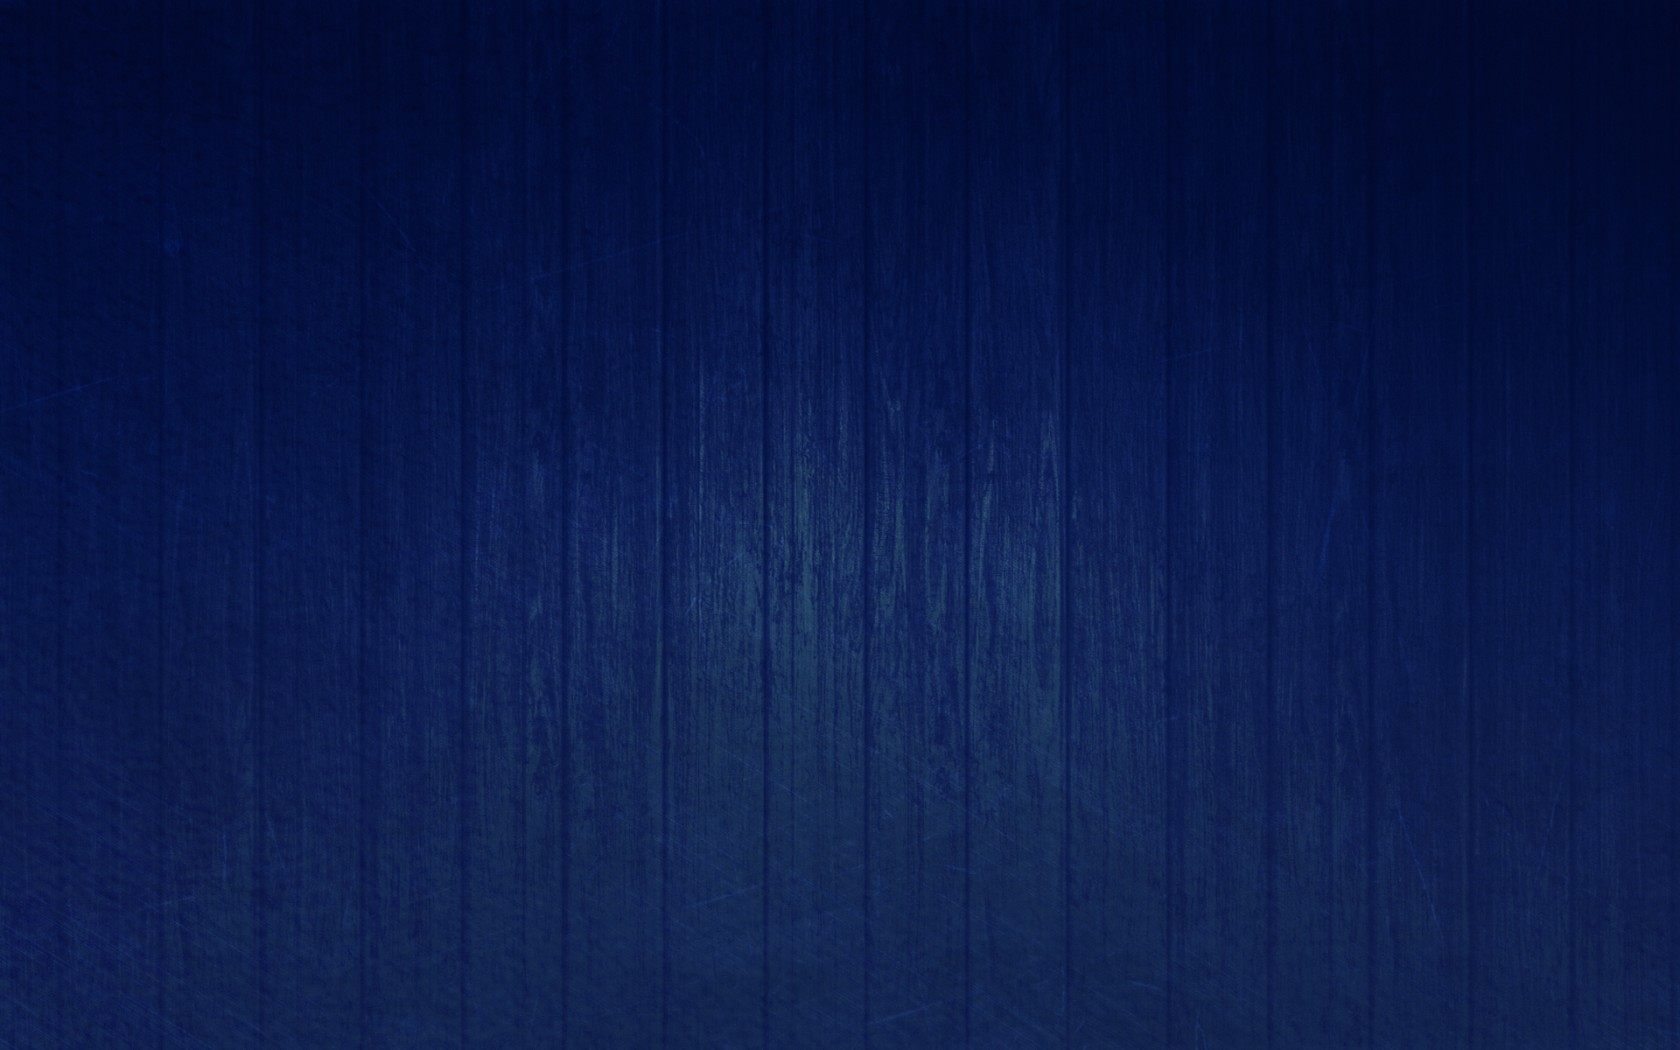 blue wallpaper 46460